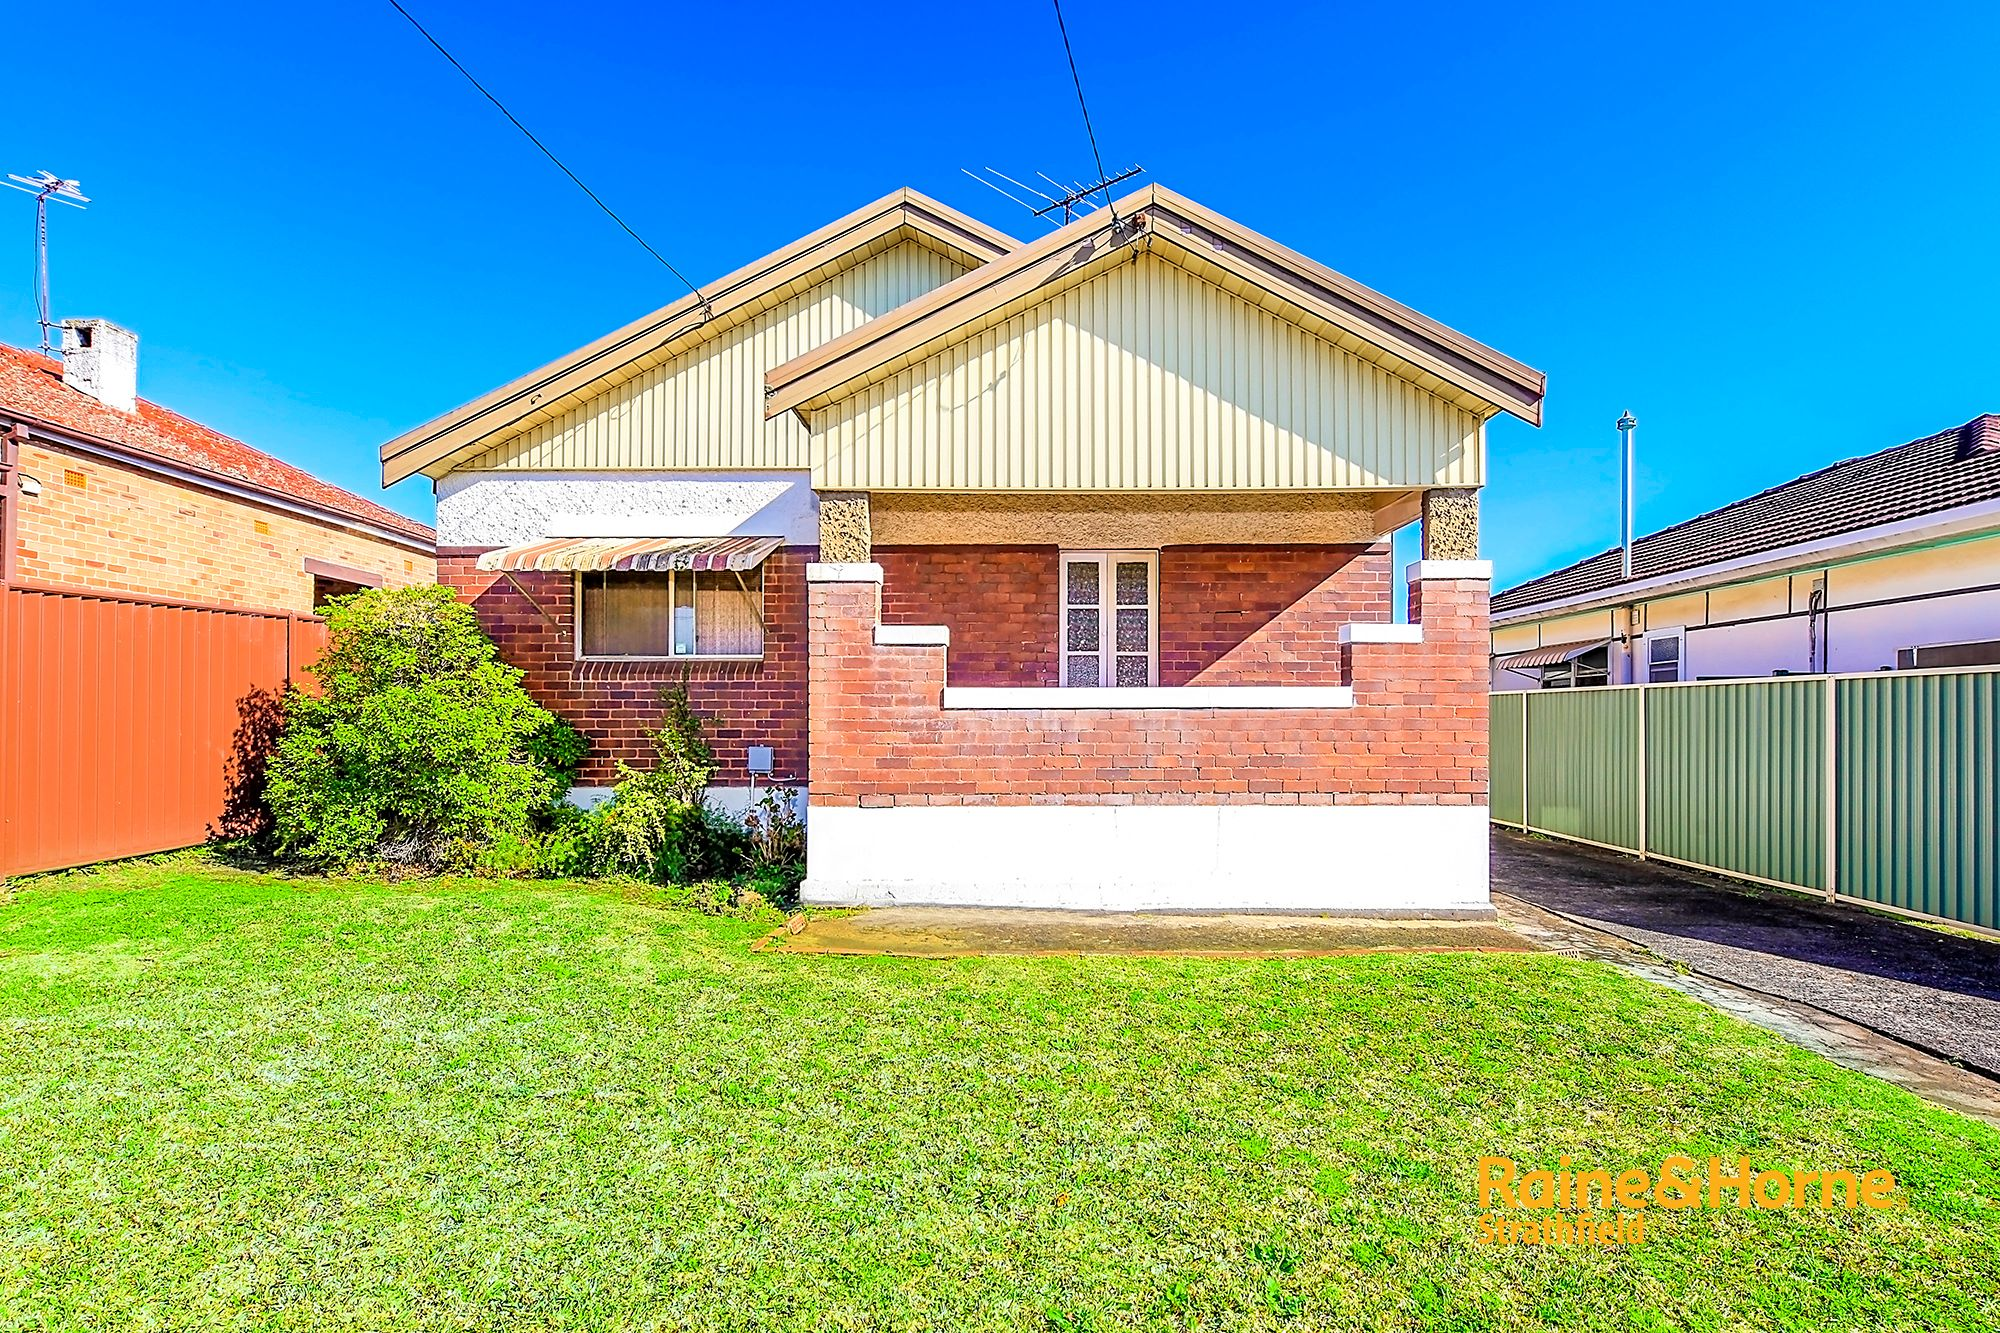 73 Bombay Street, Lidcombe NSW 2141 - House For Sale - Homely